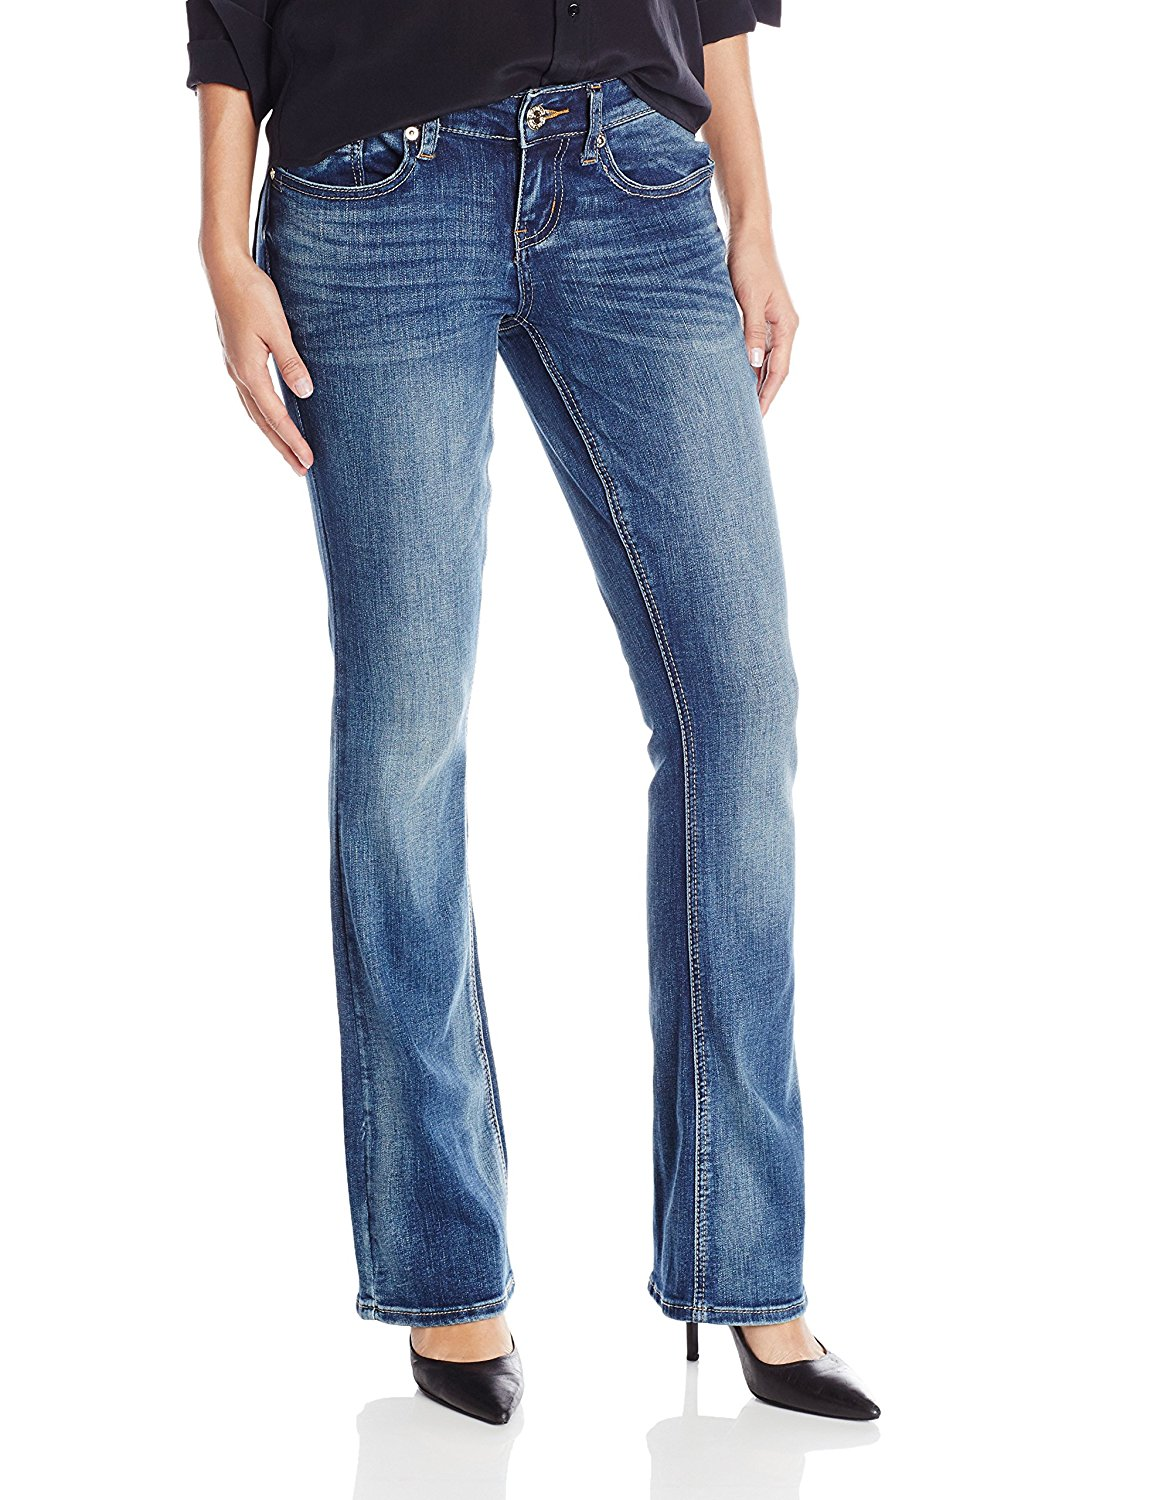 50e553acfc4 Get Quotations · Seven7 Women s Boot Cut Jean With Double Seven Back Pocket  Detail